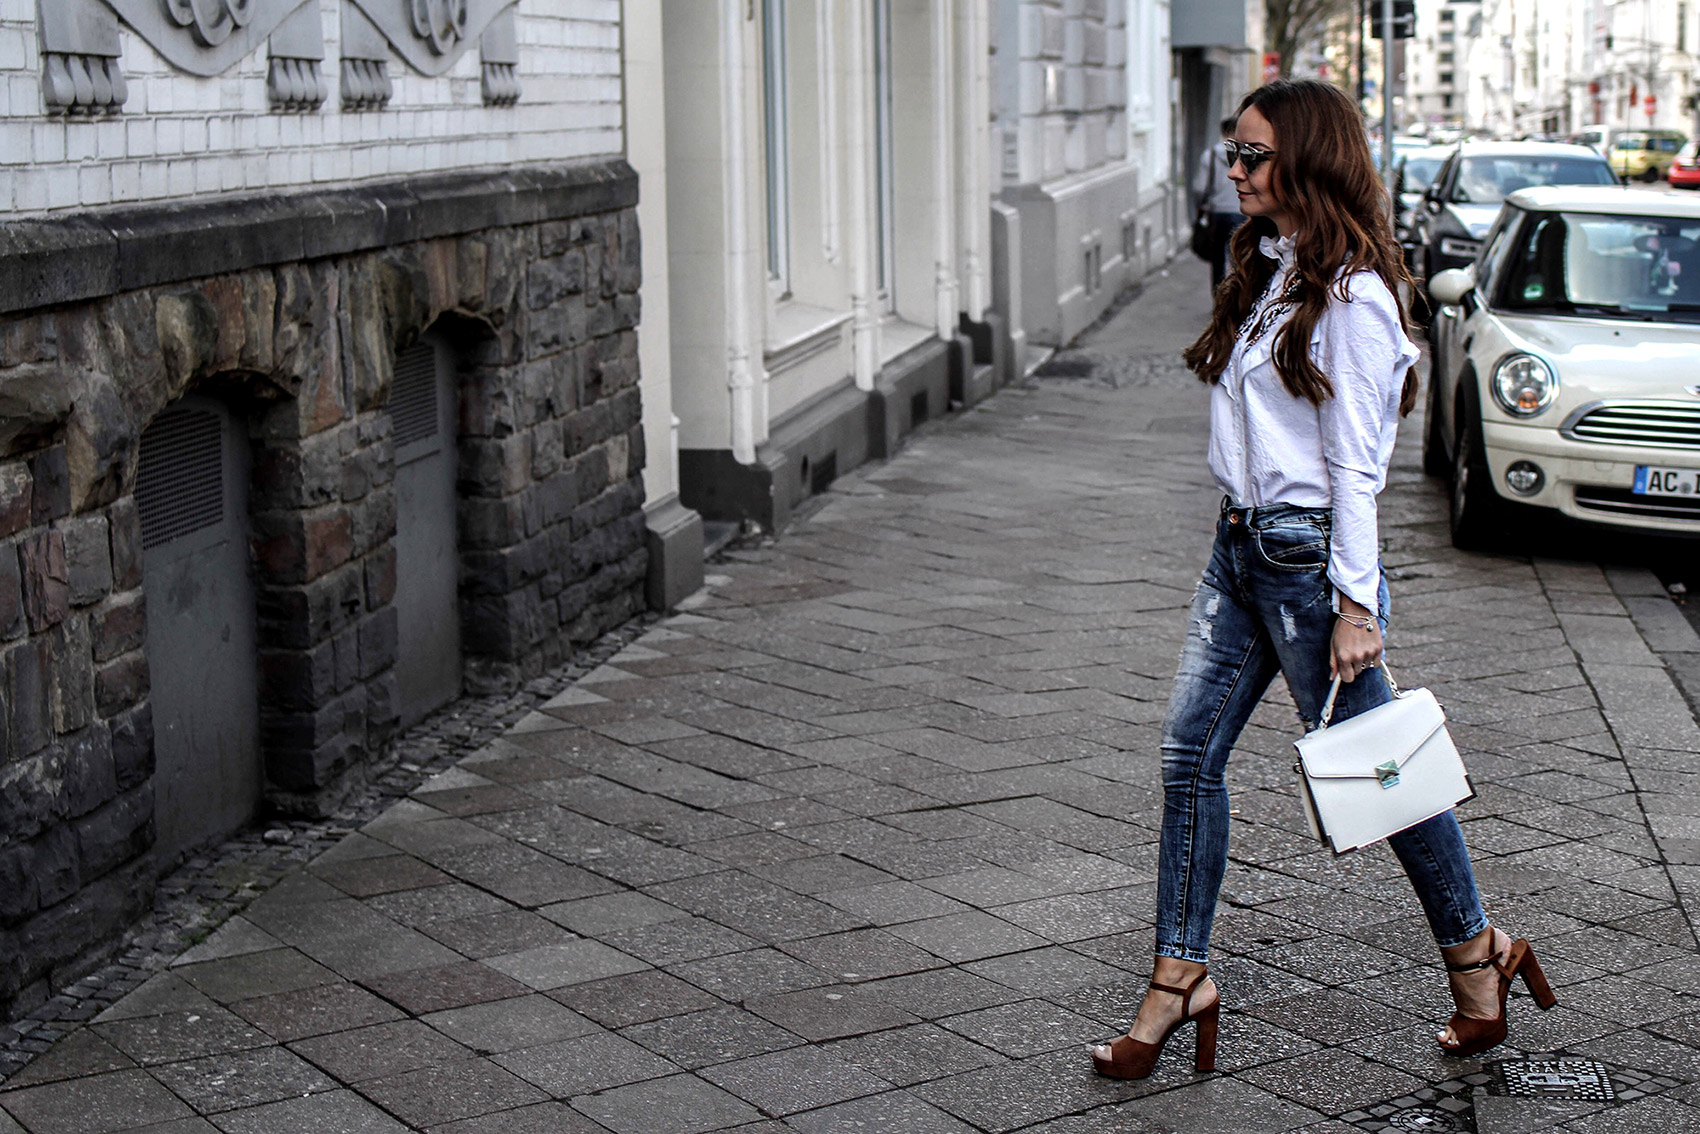 Fashioncircuz by Jenny fashioncircuz_jenny_streetstyle_chicwis_grethe_winter In Jeans und Bluse durch den Frühling